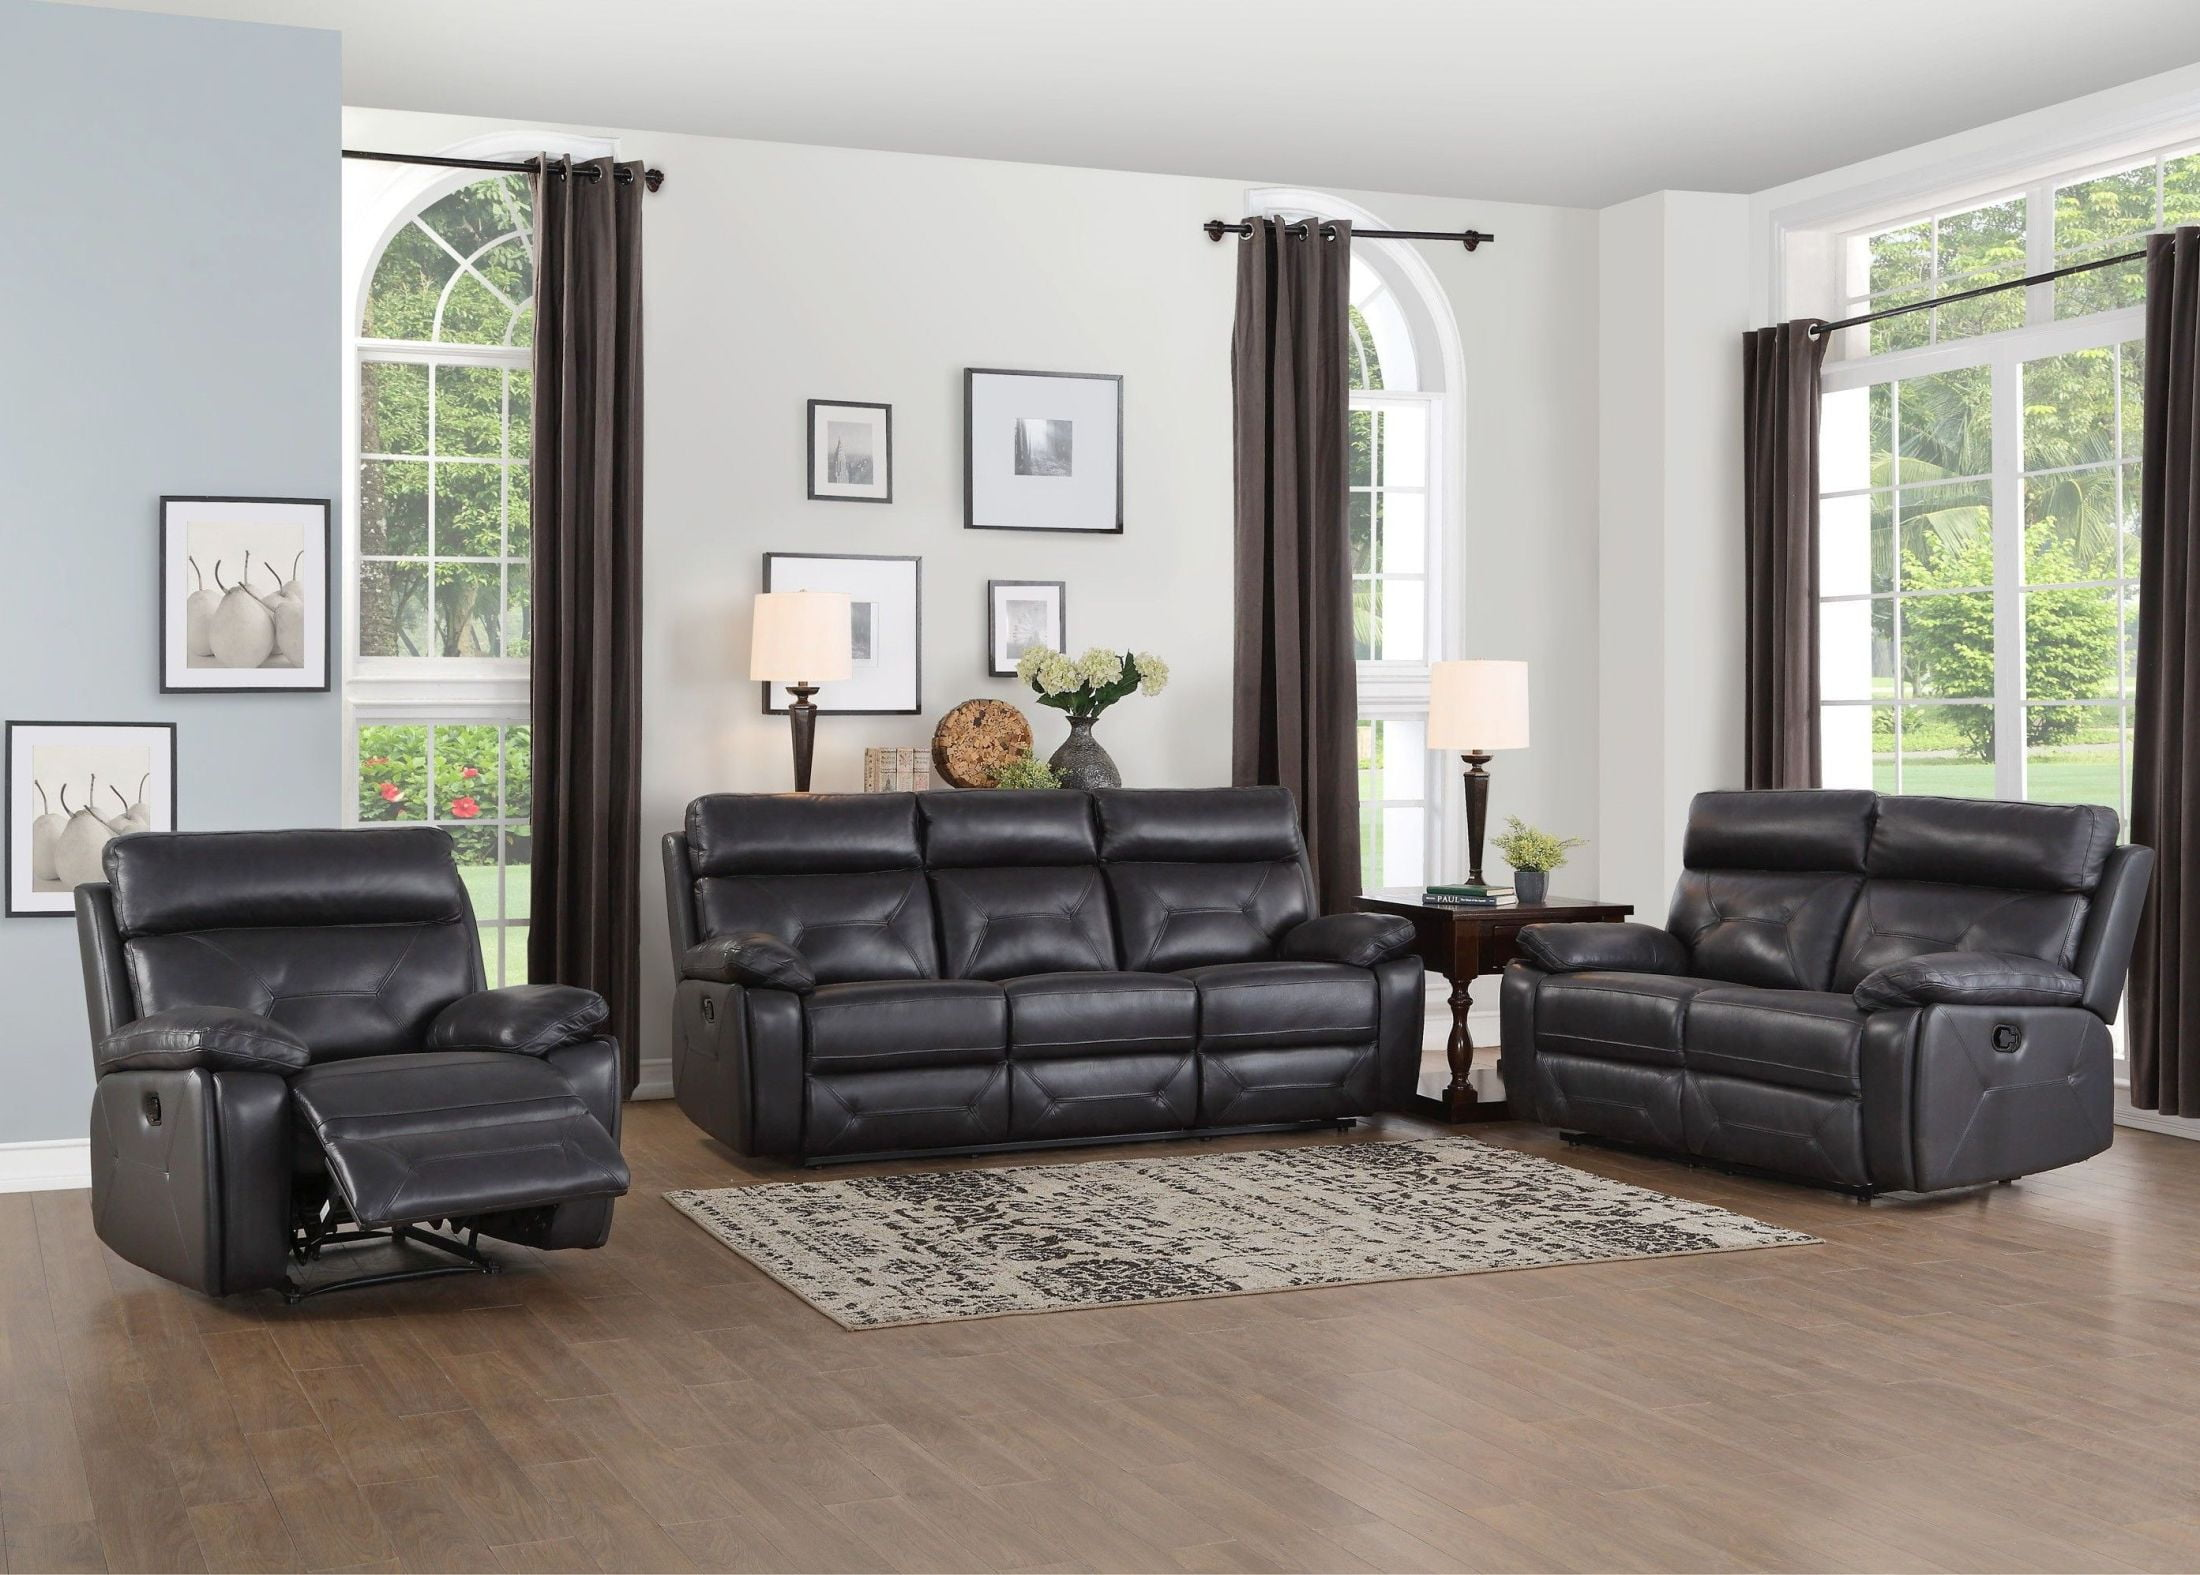 Homelegance Resonance 2pc Grey Sofa Loveseat Set